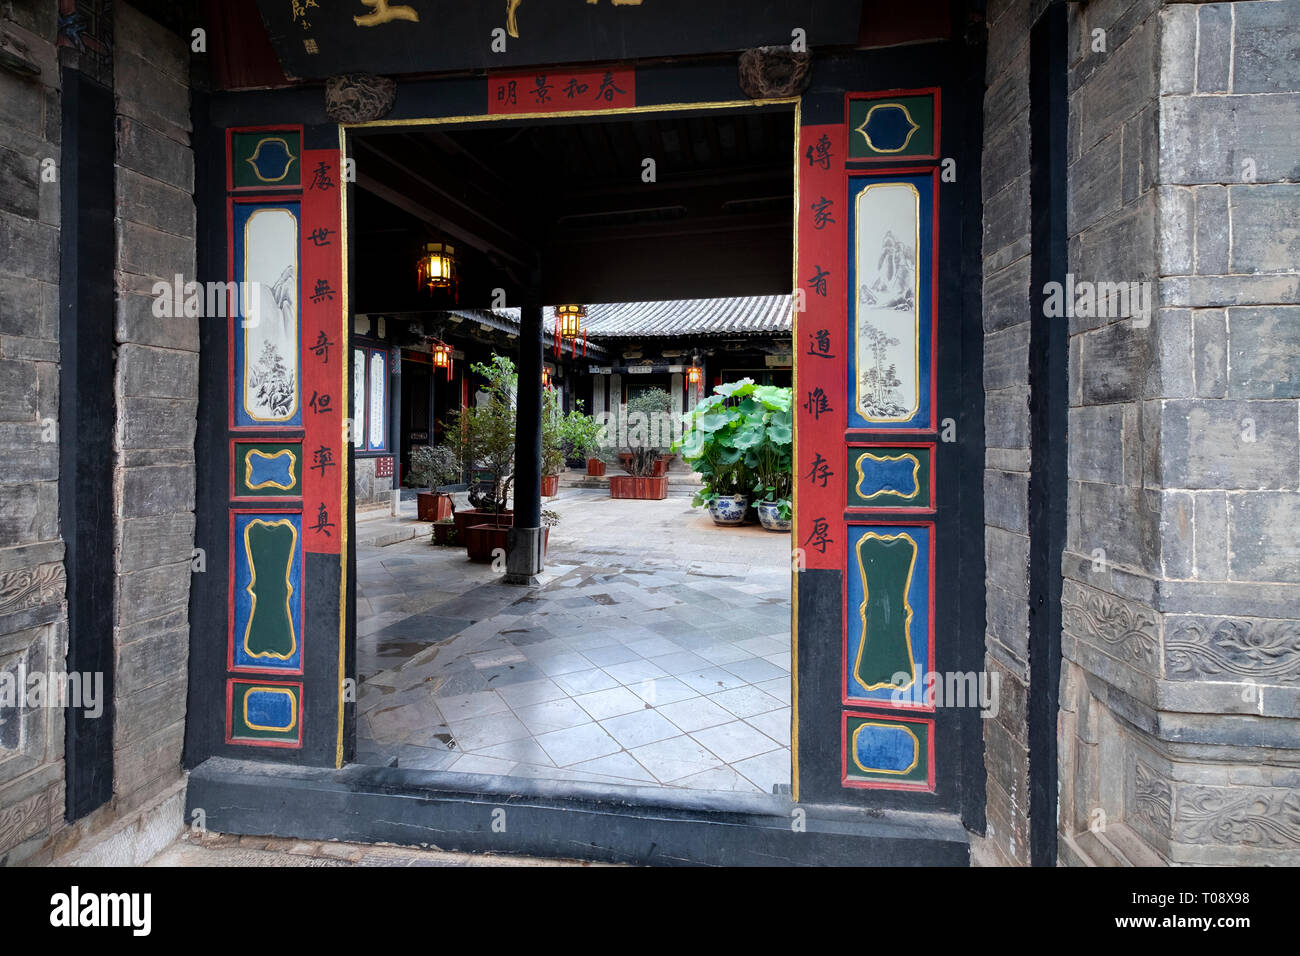 Carved wood doors Interior courtyard, Zhu Family house, Jianshui Ancient Town, Yunnan Province, China - Stock Image